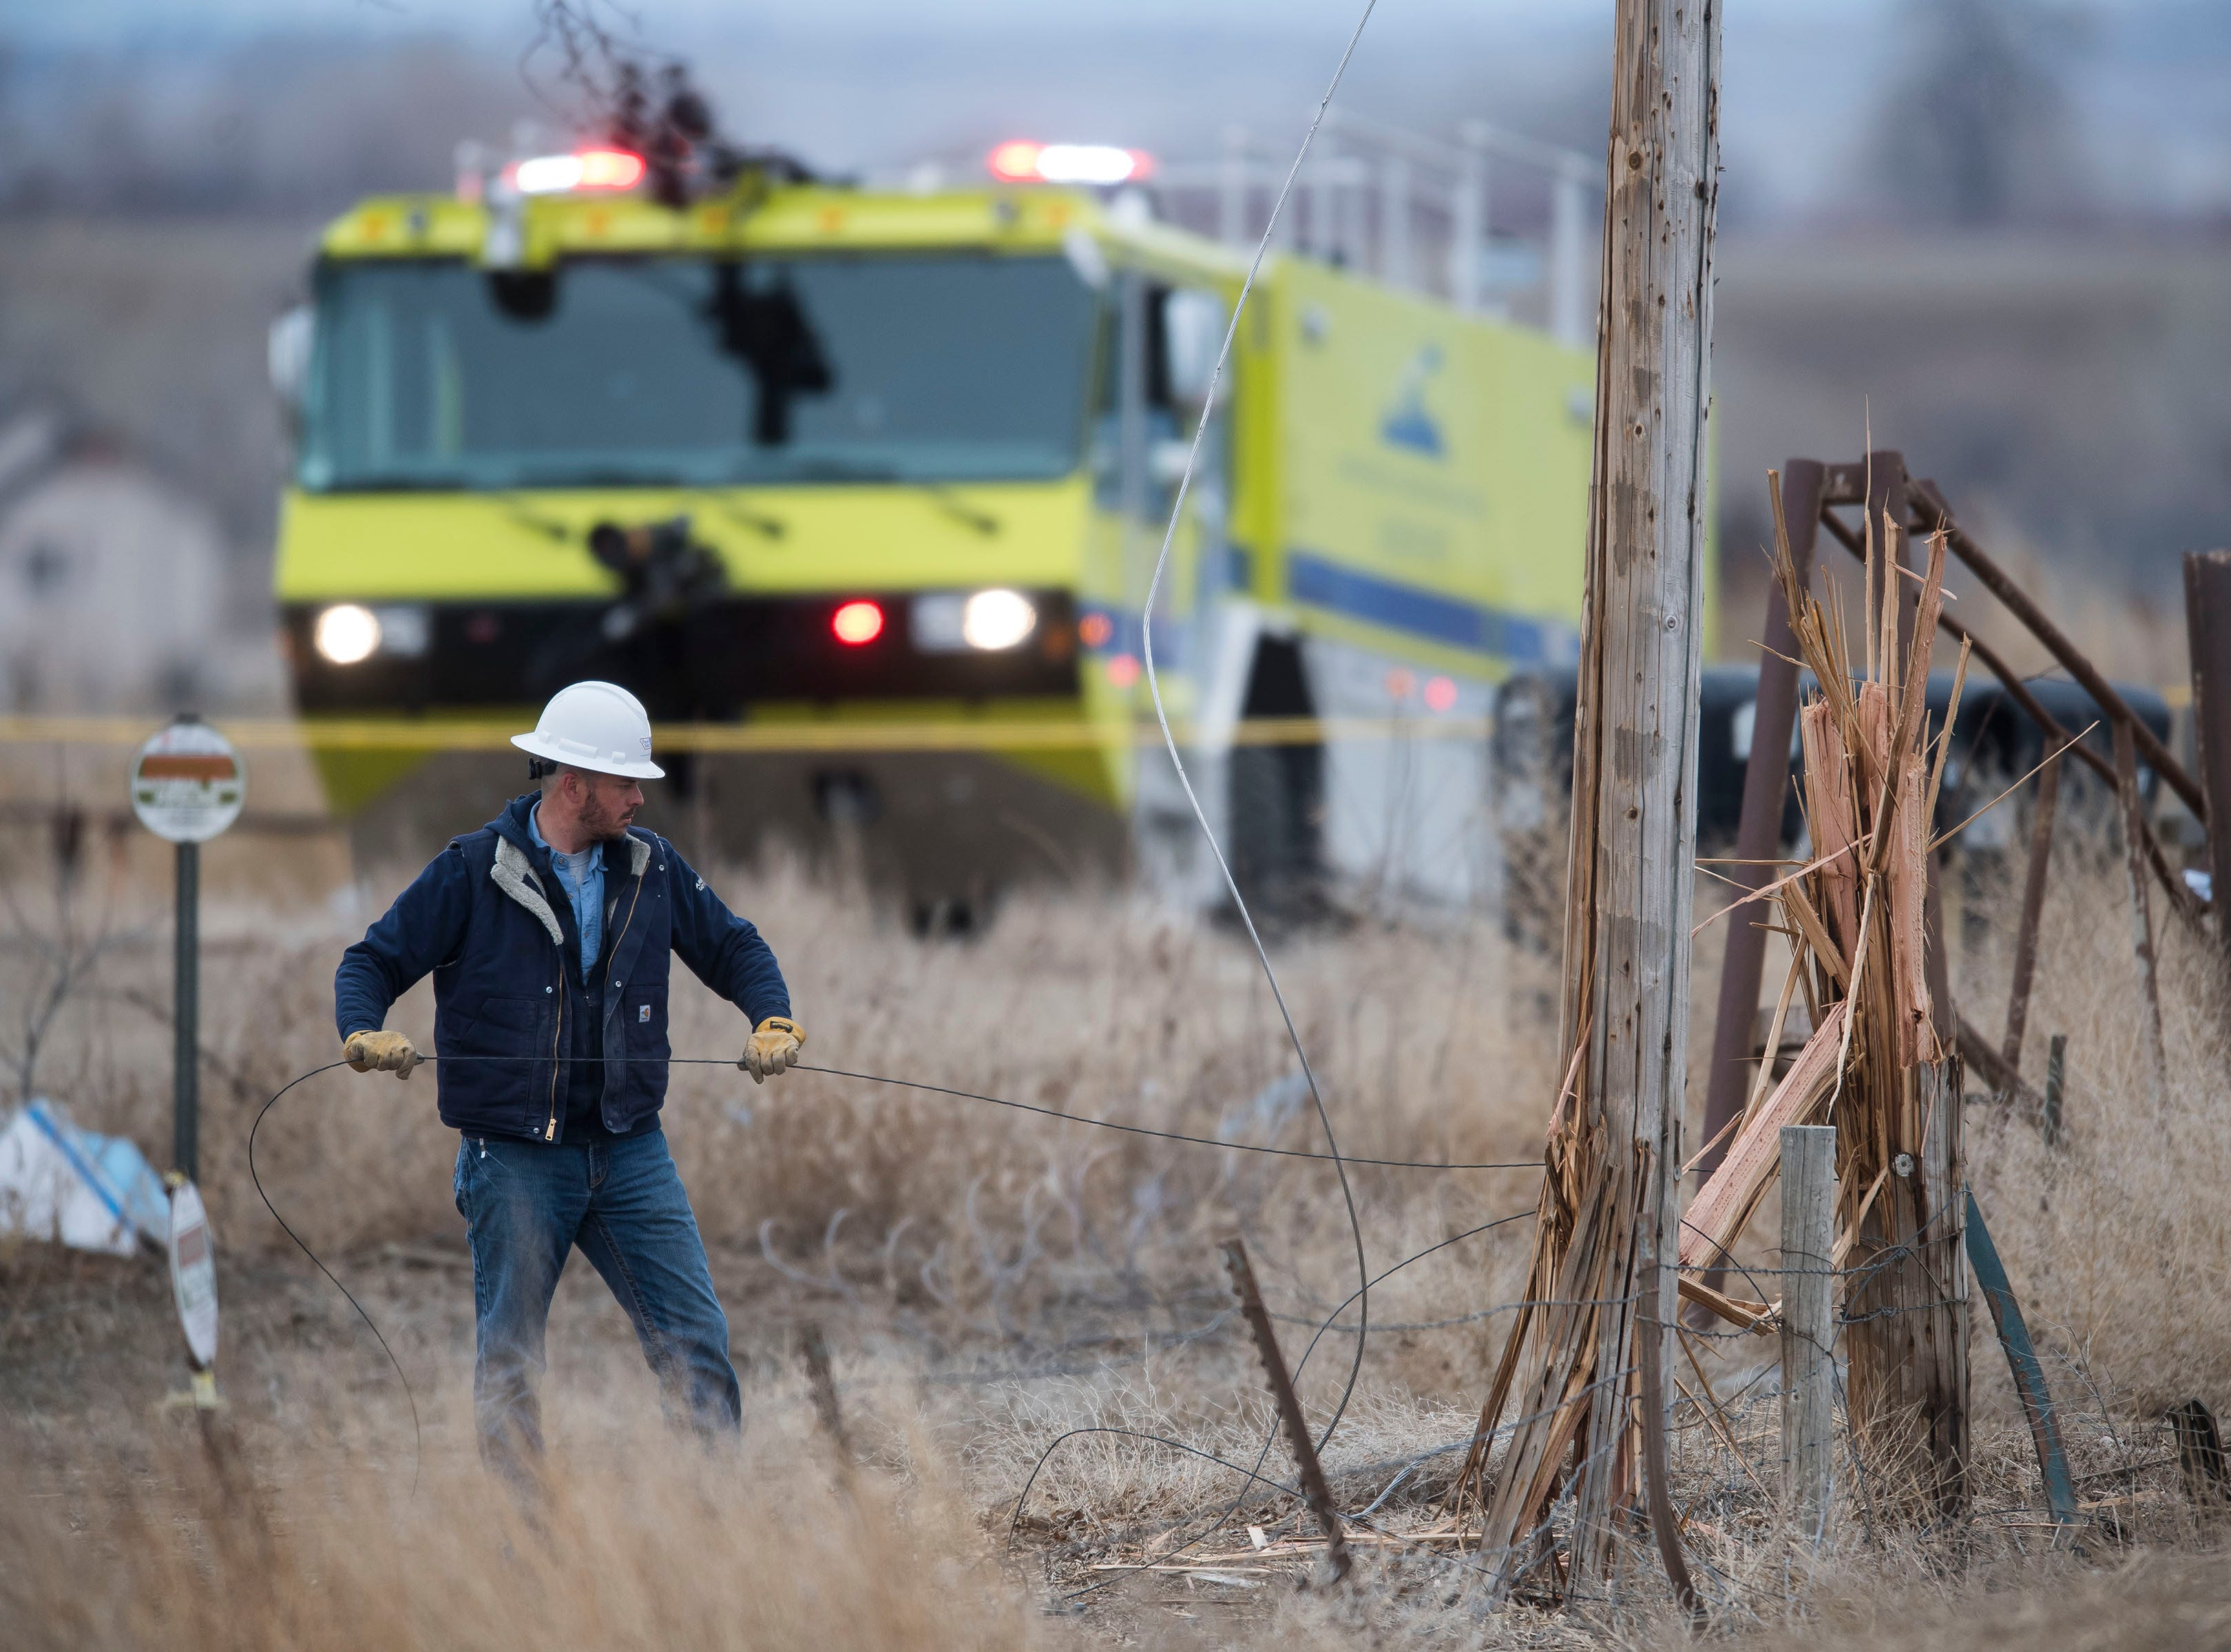 A man works to free a utility pole that was cut in half when a small plane crashed into it, injuring three people onboard, on Saturday, March 23, 2019, west of the Northern Colorado Regional Airport.